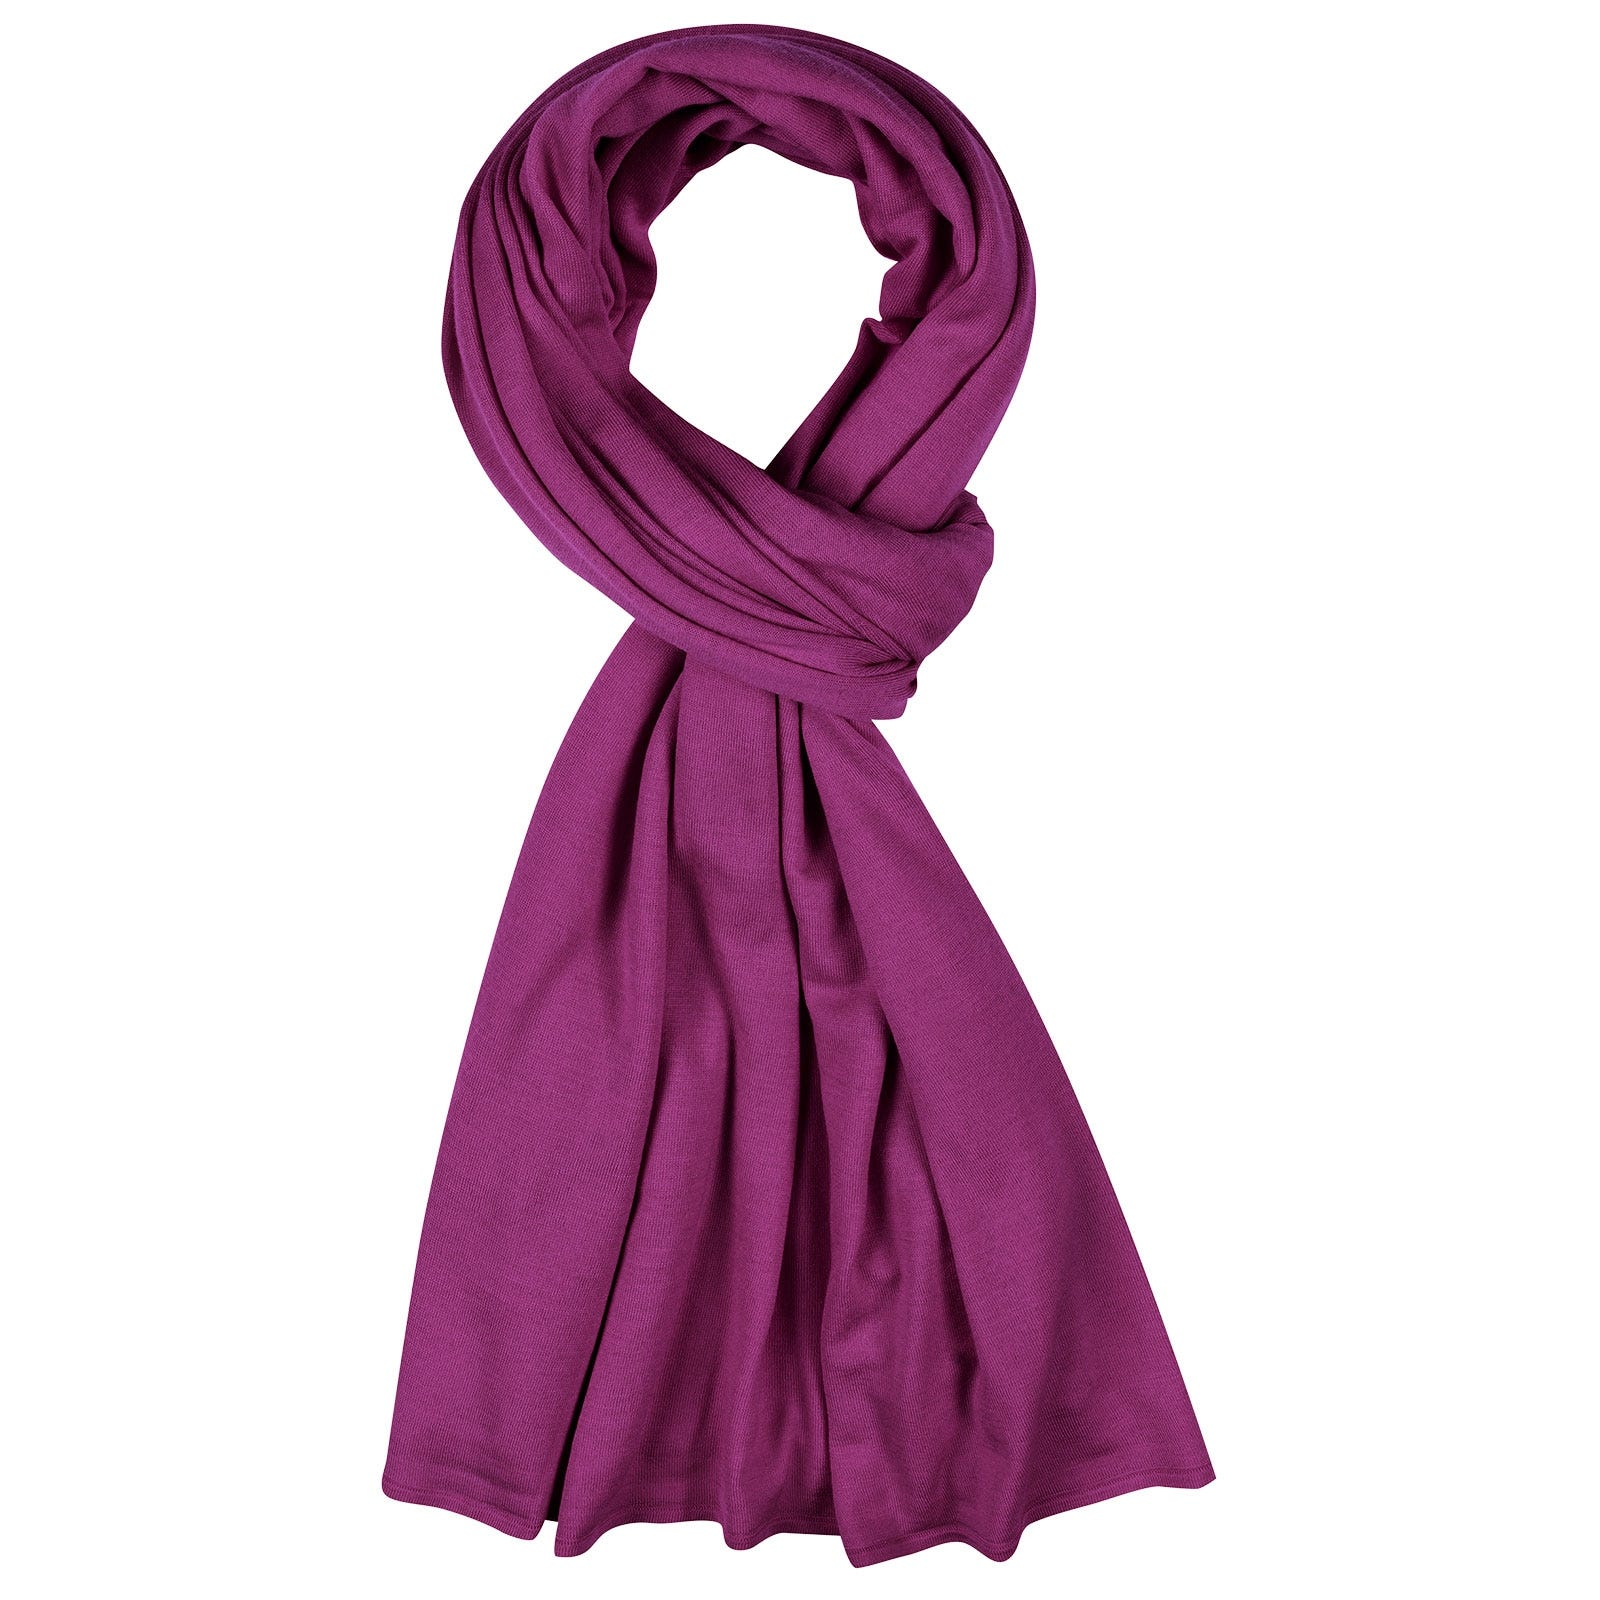 John Smedley Wings Merino Wool Shawl in Prism Violet-ONE